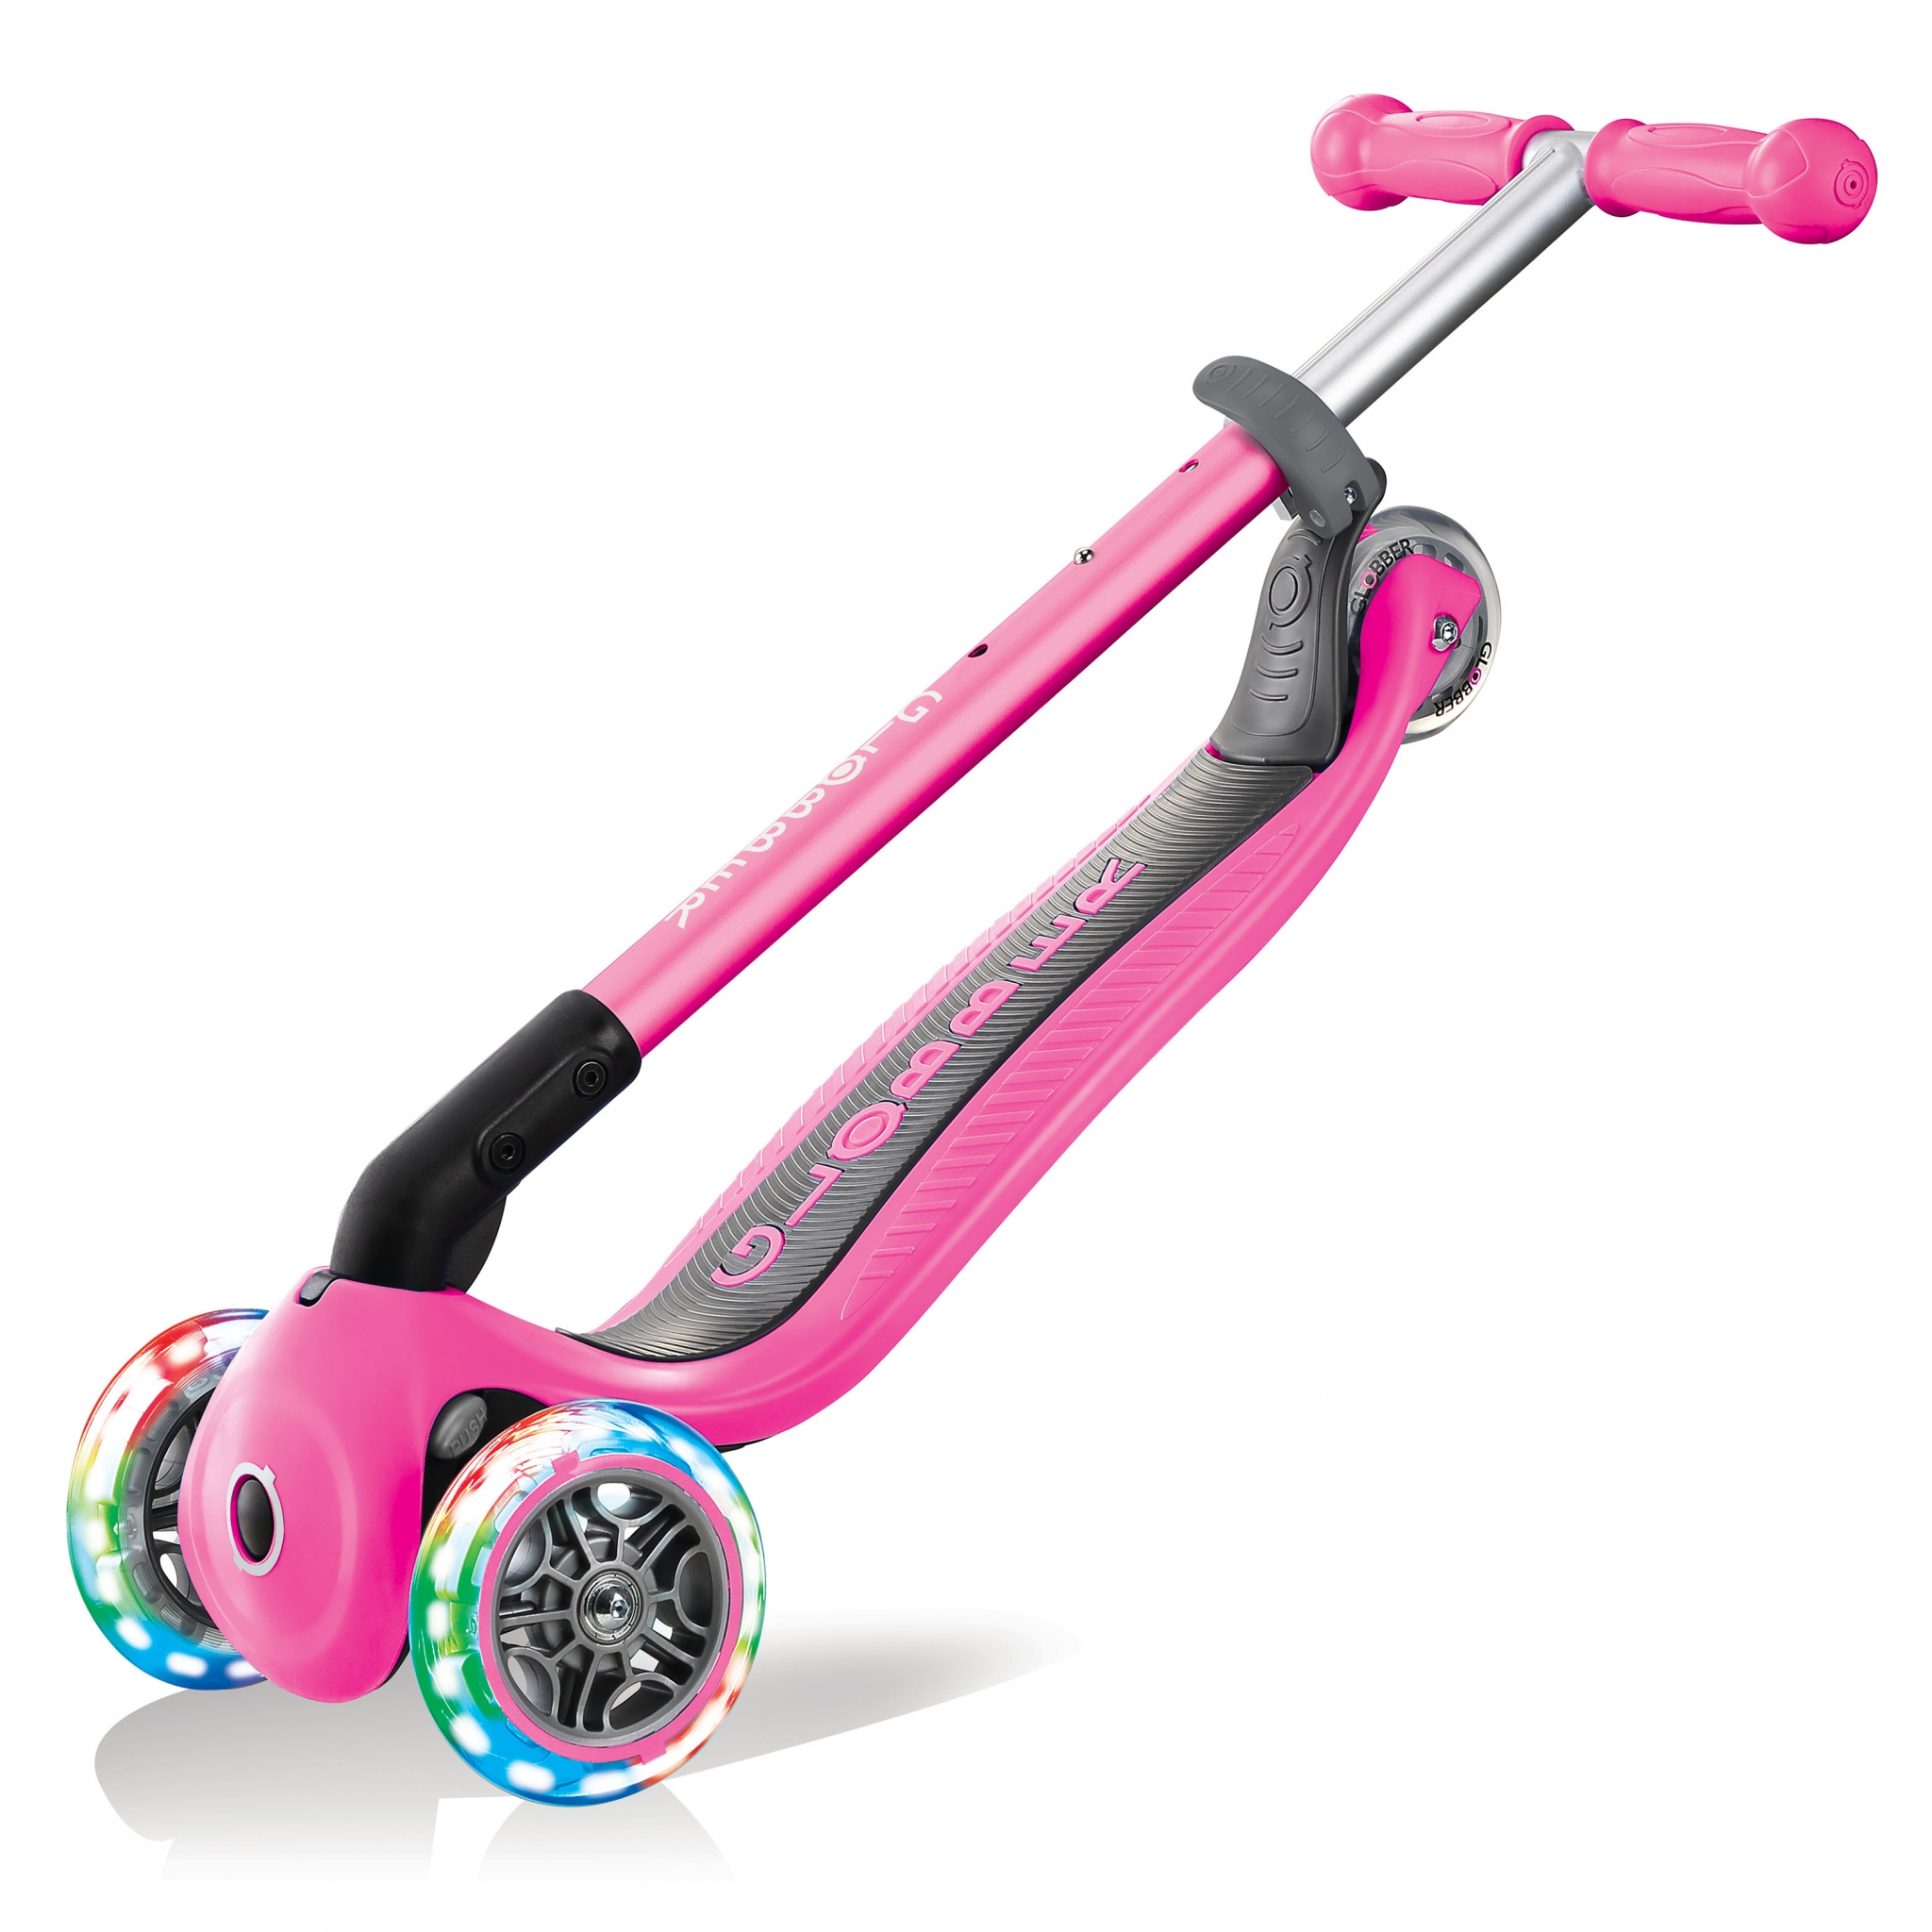 PRIMO-FOLDABLE-LIGHTS-3-wheel-foldable-scooter-for-kids-trolley-mode-neon-pink